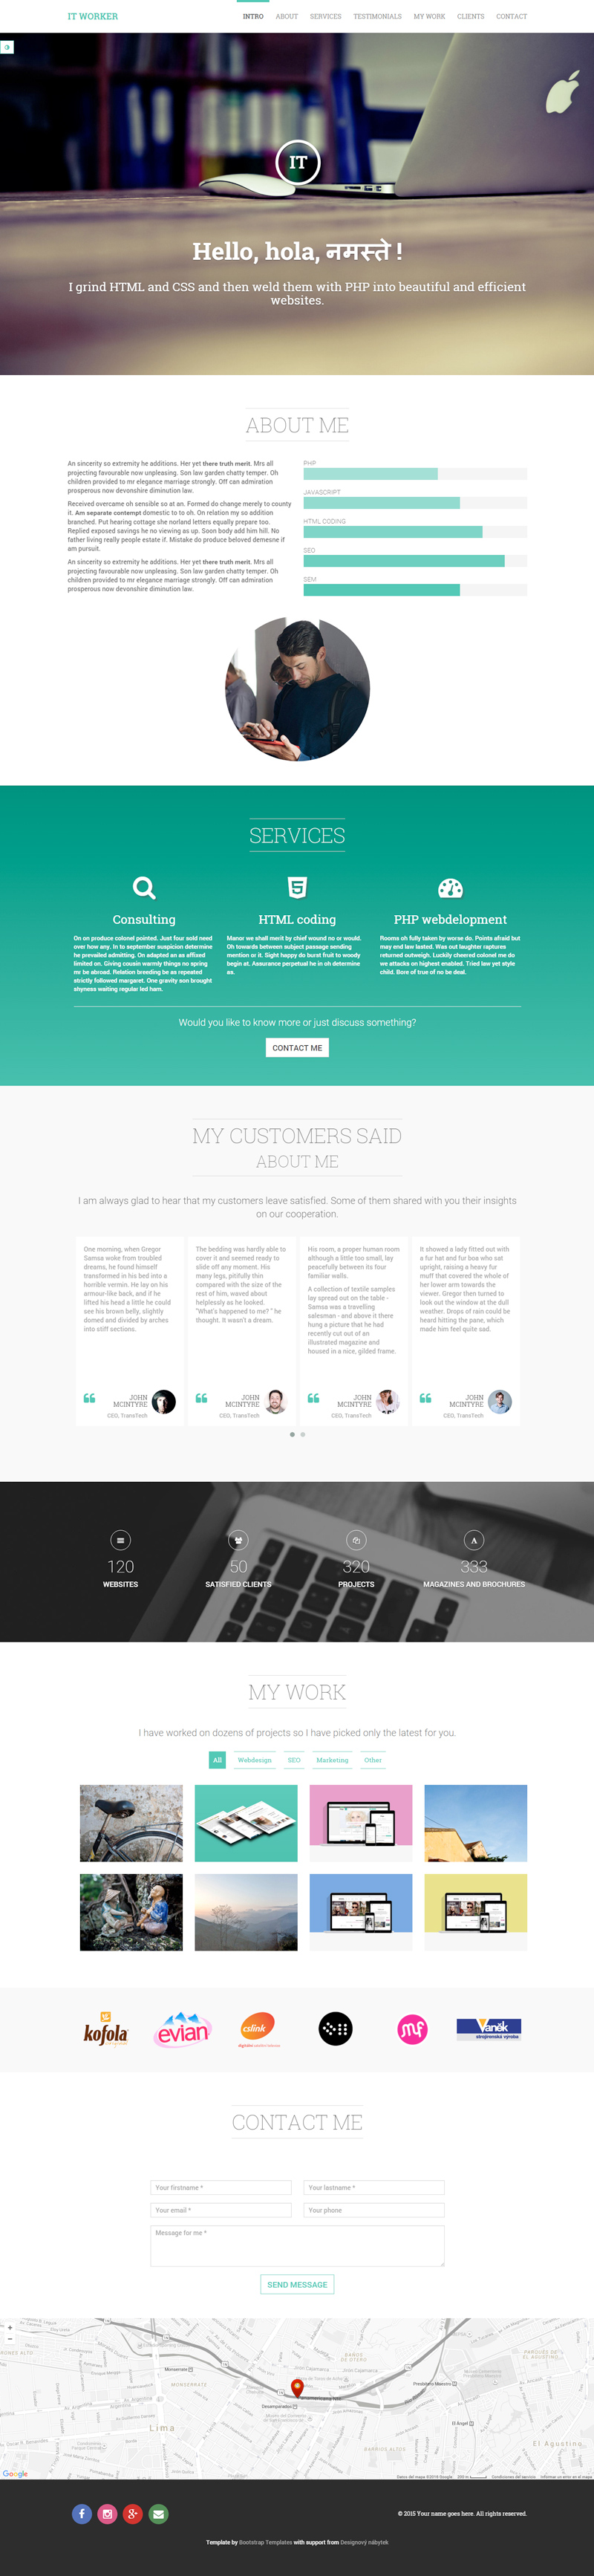 IT Worker: Responsive Portfolio HTML & CSS Template | Bypeople